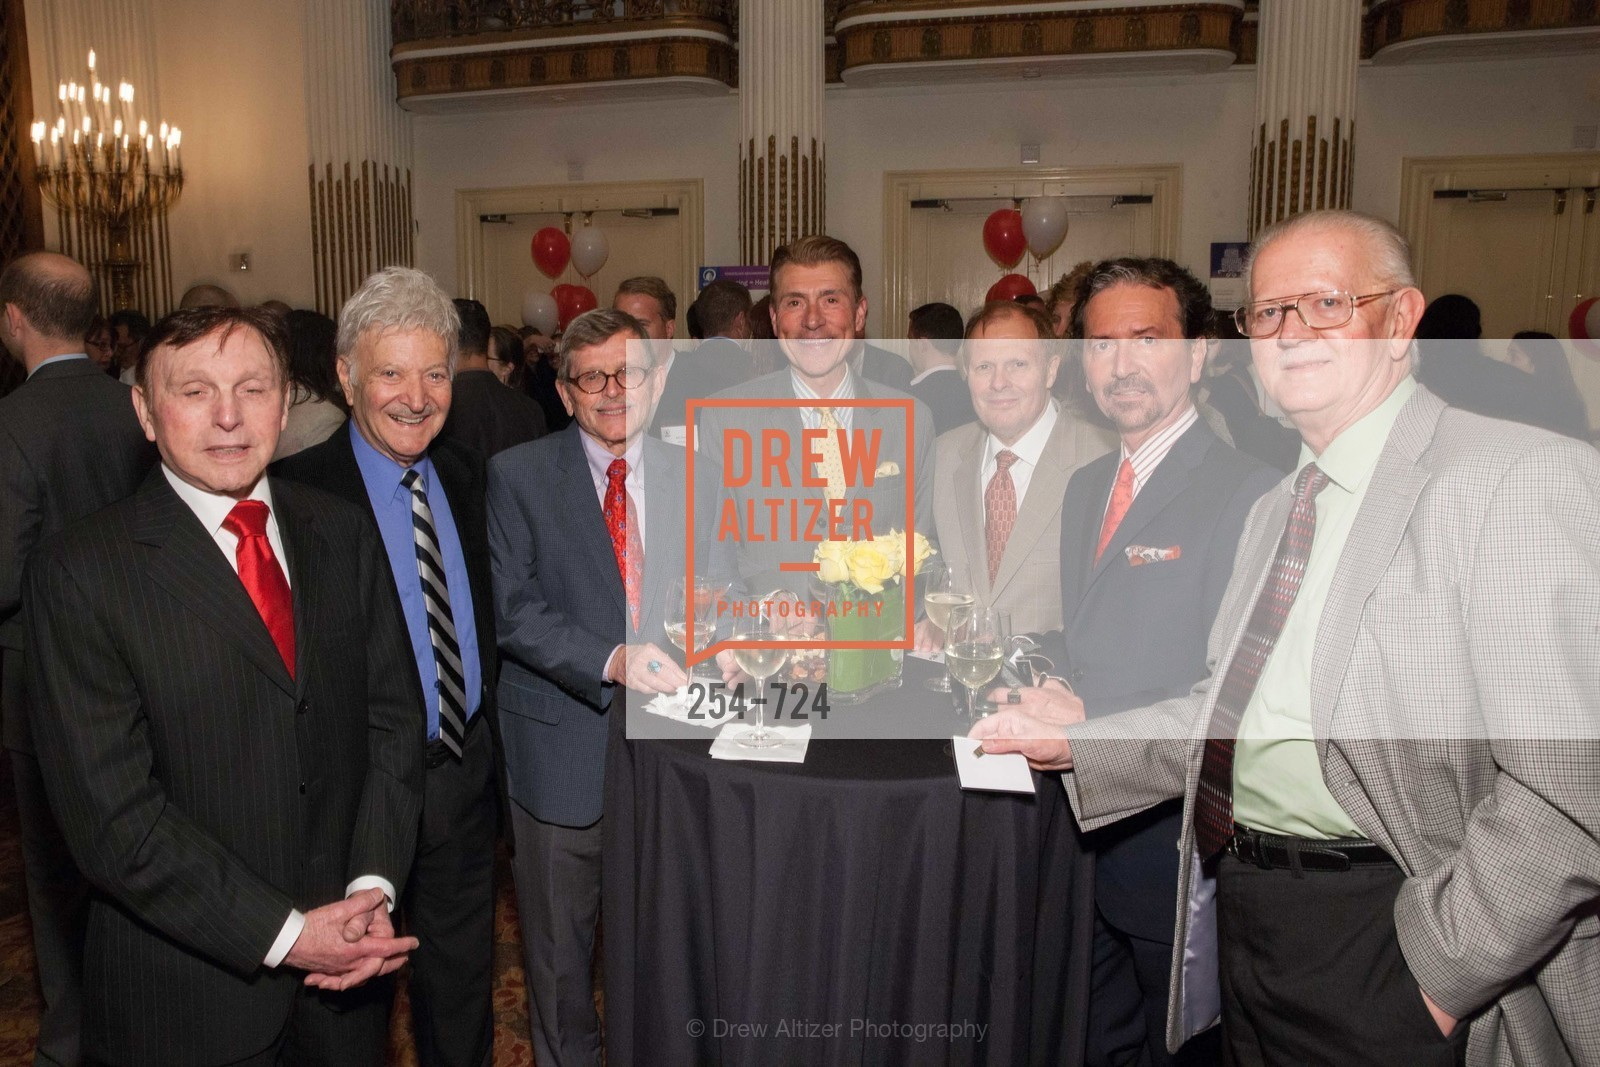 Frank Stein, Milton Mosk, Bill Gregory, Robert Beadle, Jack Hagden, John Burns, Thomas Foutch, TNDC's 34th Annual Birthday Dinner, US, May 13th, 2015,Drew Altizer, Drew Altizer Photography, full-service agency, private events, San Francisco photographer, photographer california